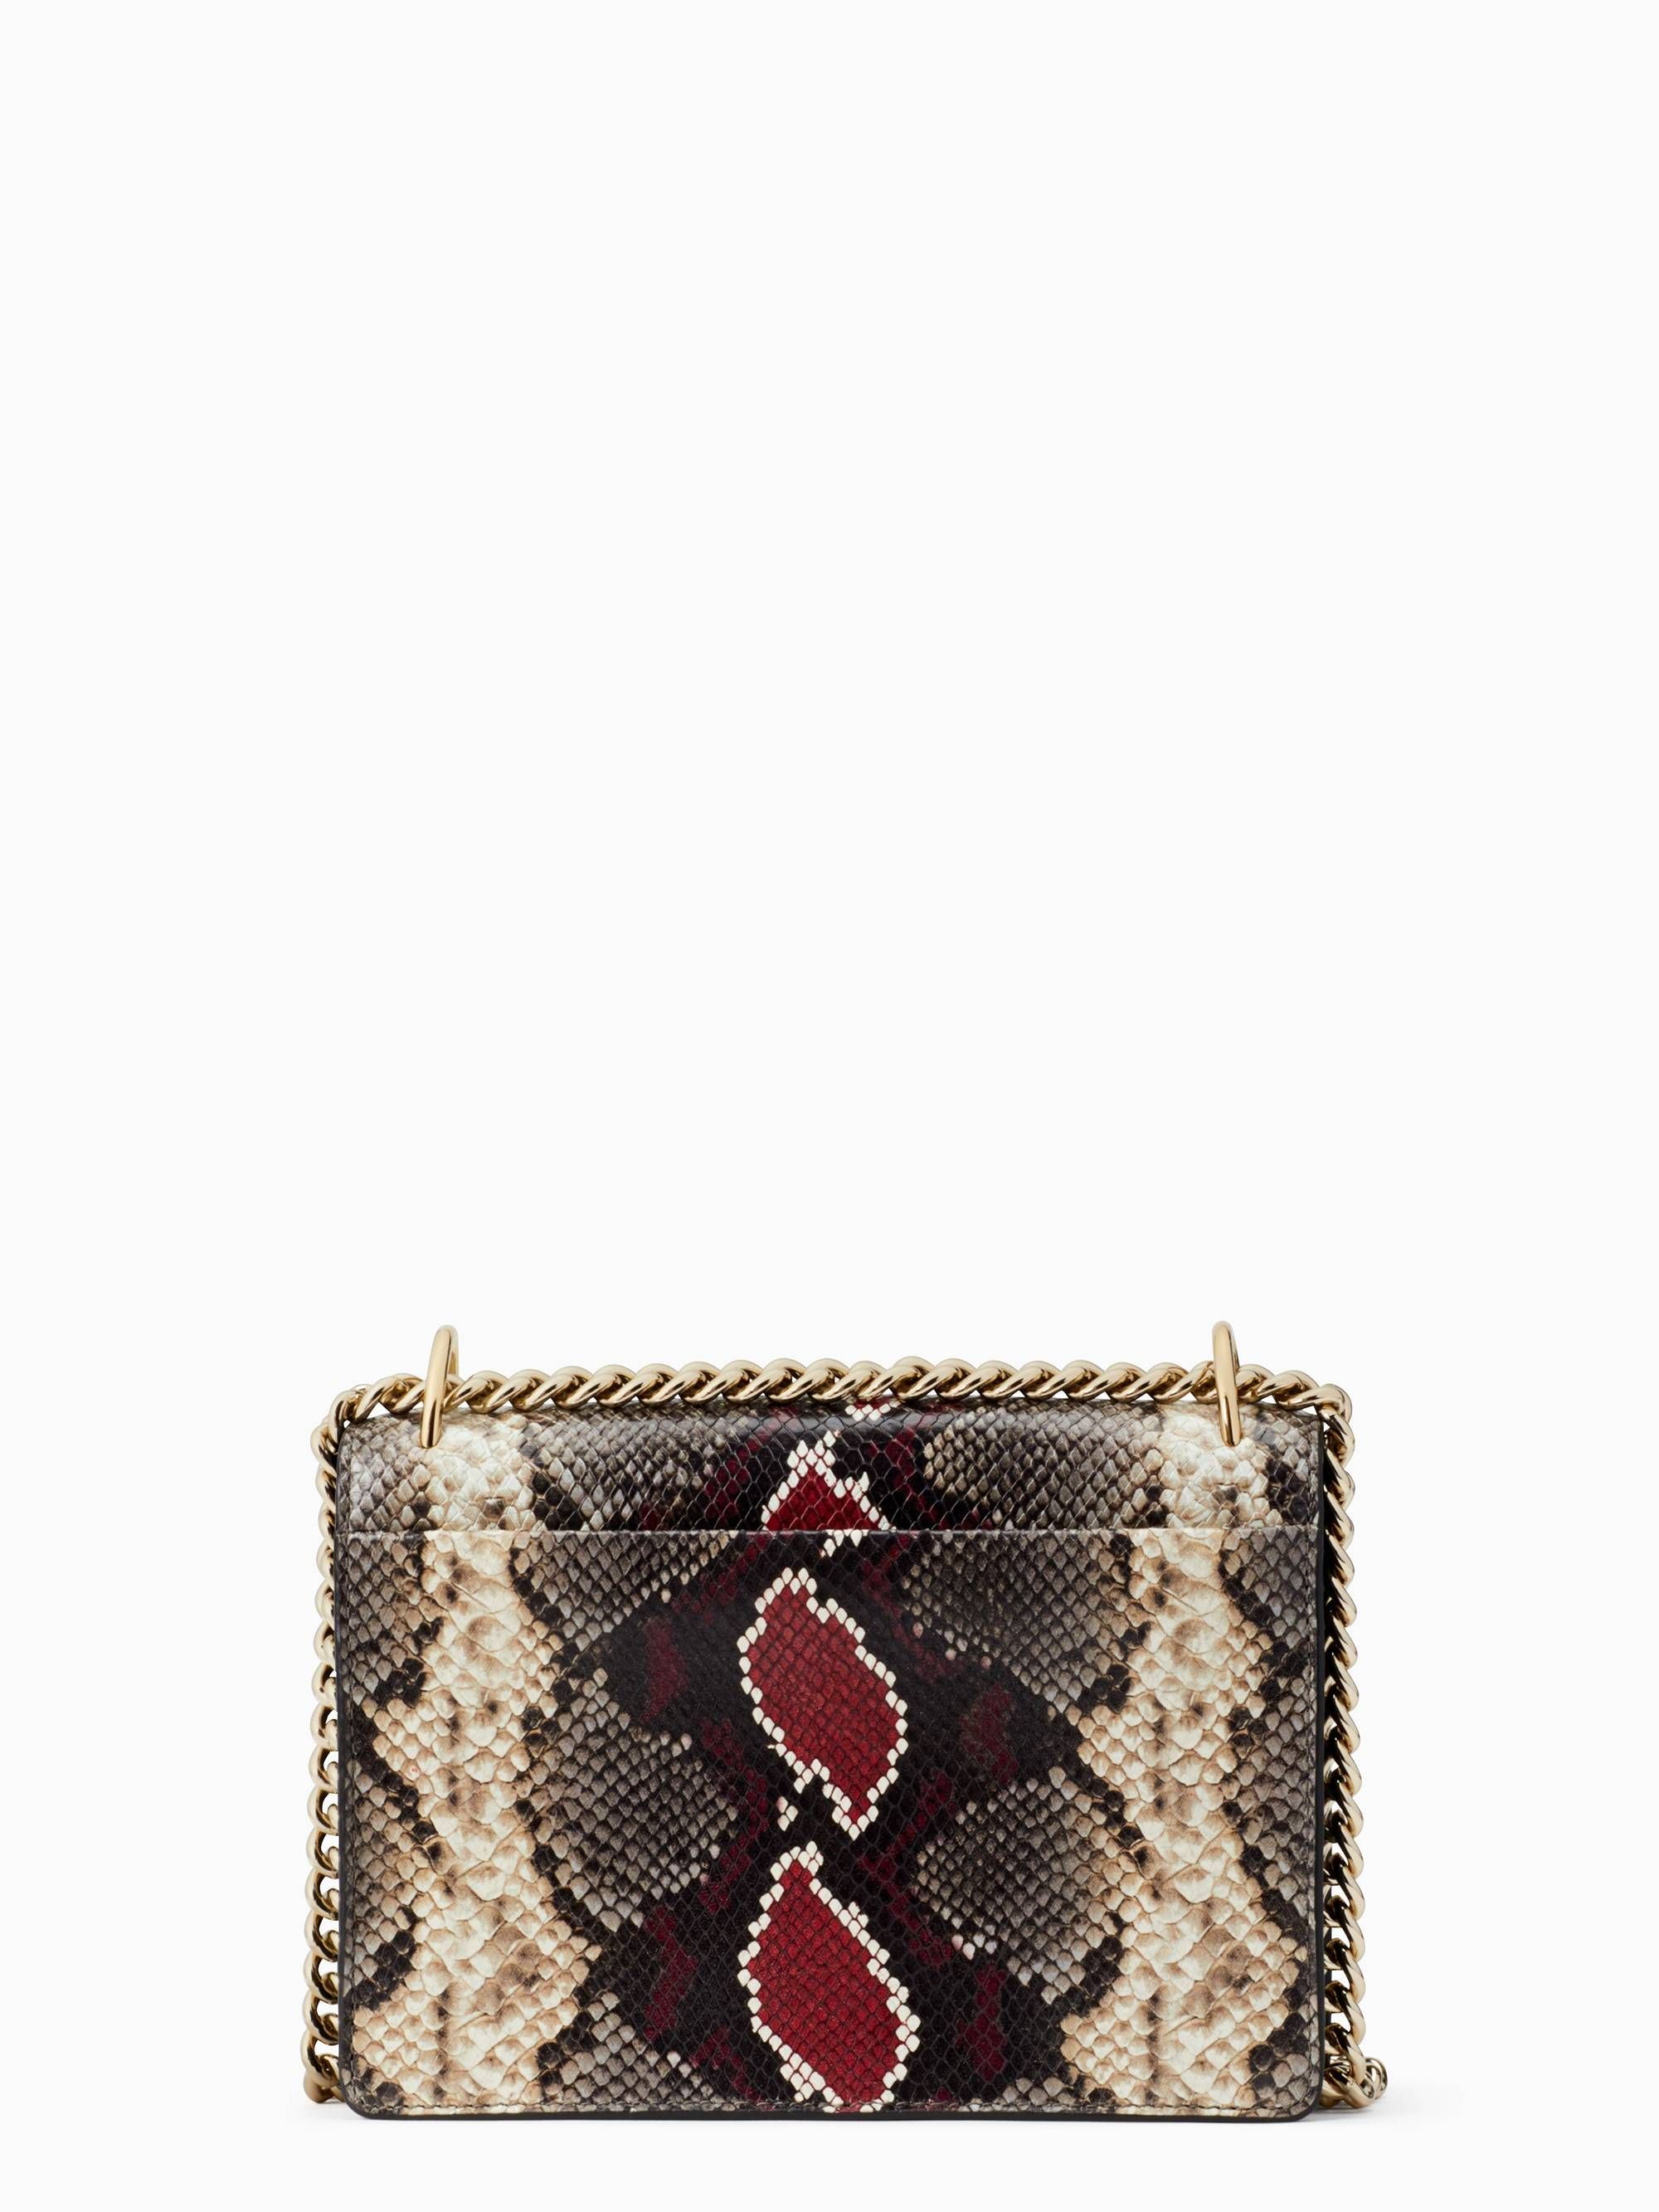 98a7611b266c REESE PARK SNAKE marci, , s7productThumbnail | Bags for meeeee ...